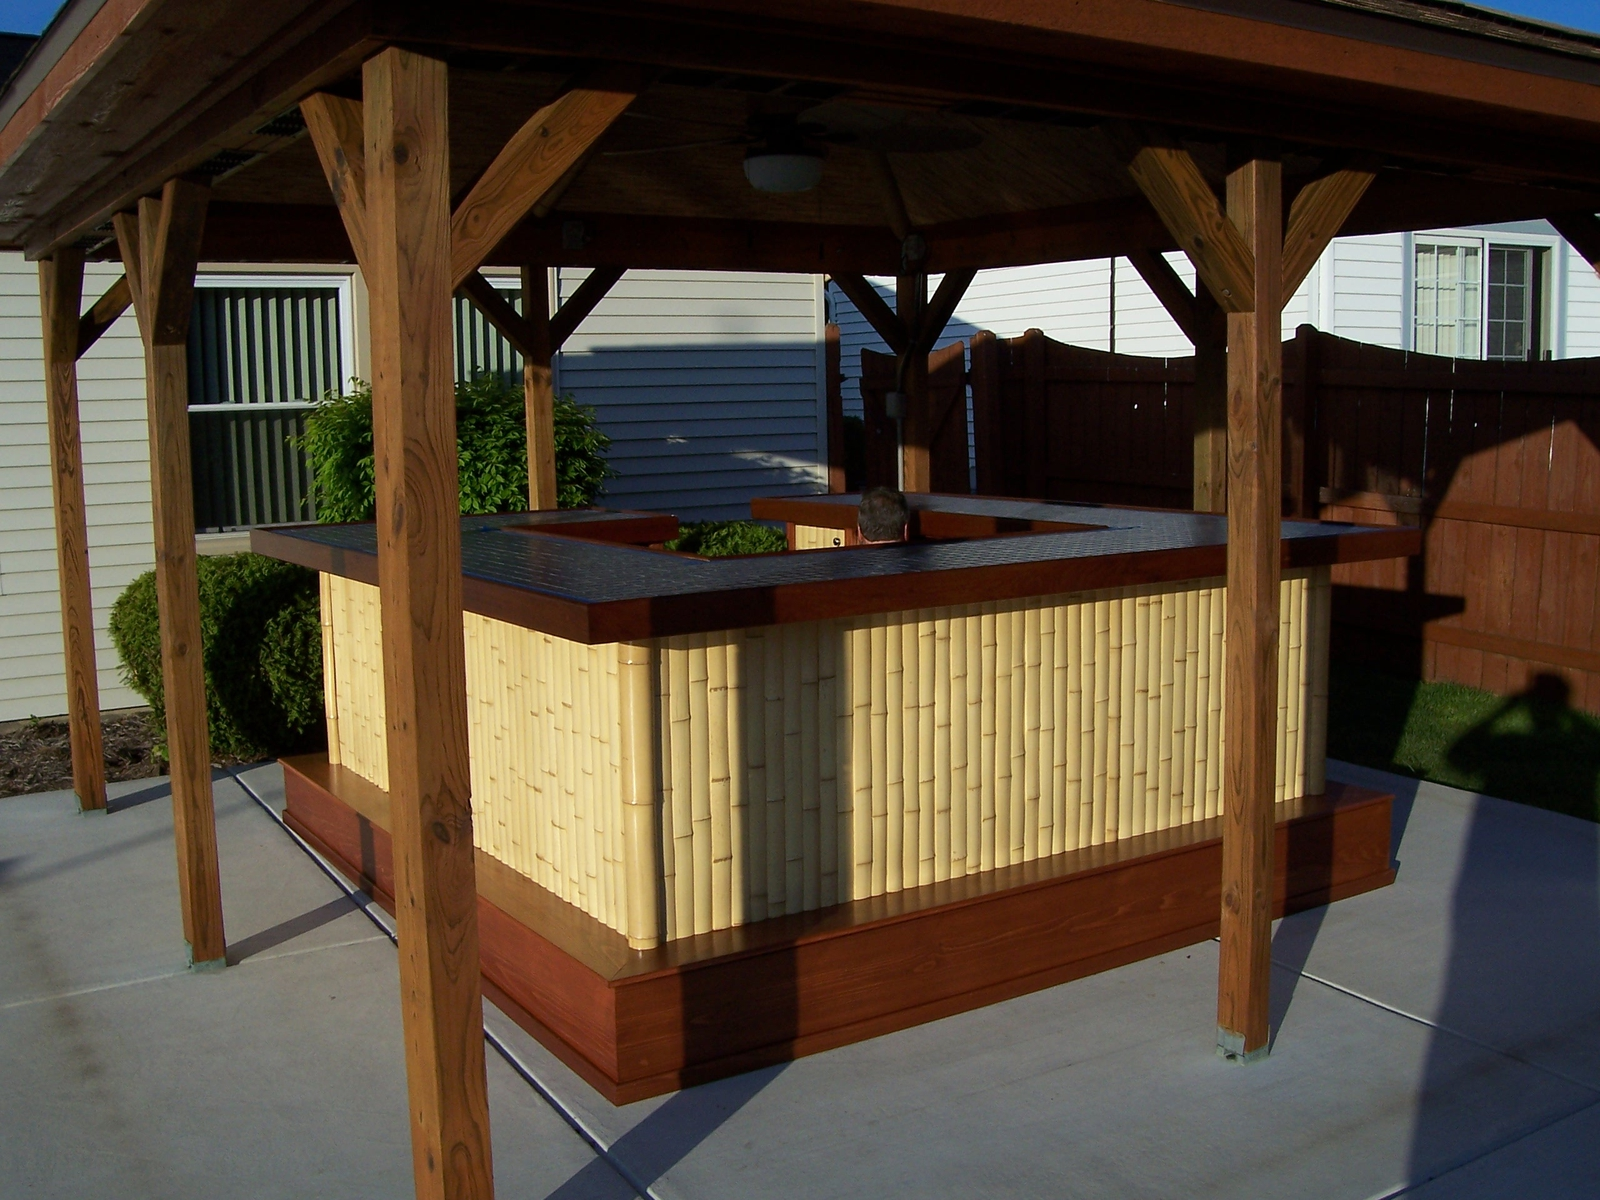 Bamboo Tiki Bar By Jeffrey William Construction Inc. At CustomMade.com